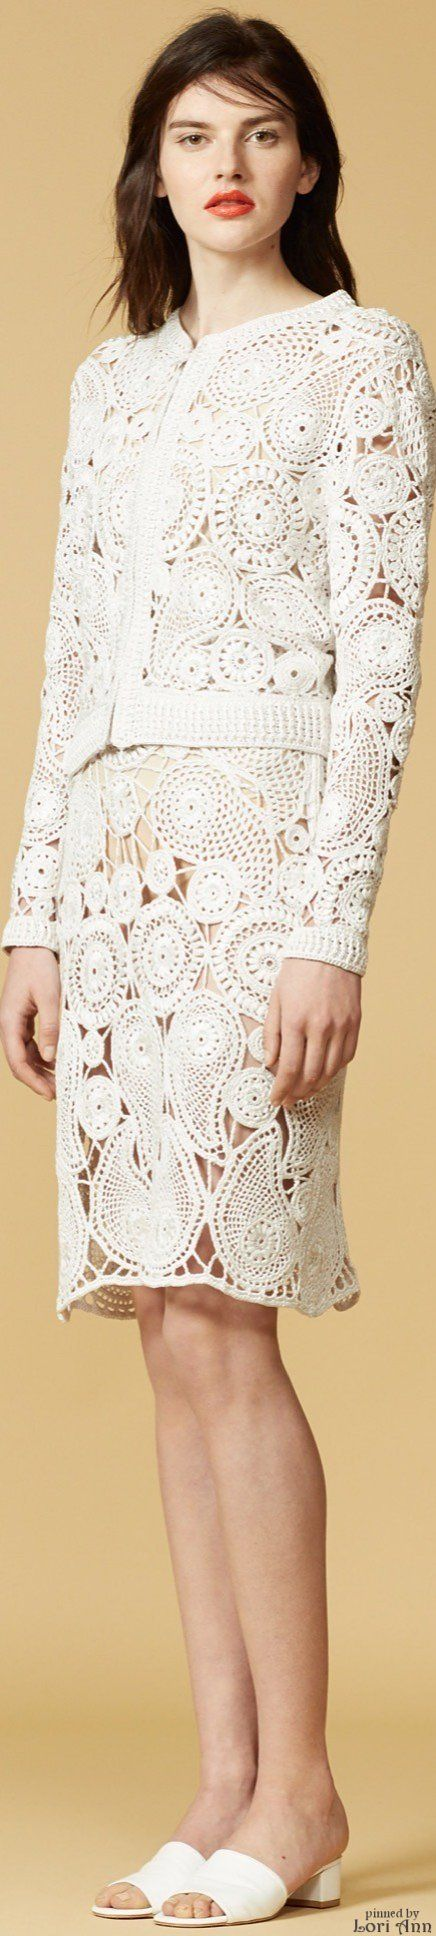 Orley Resort 2016